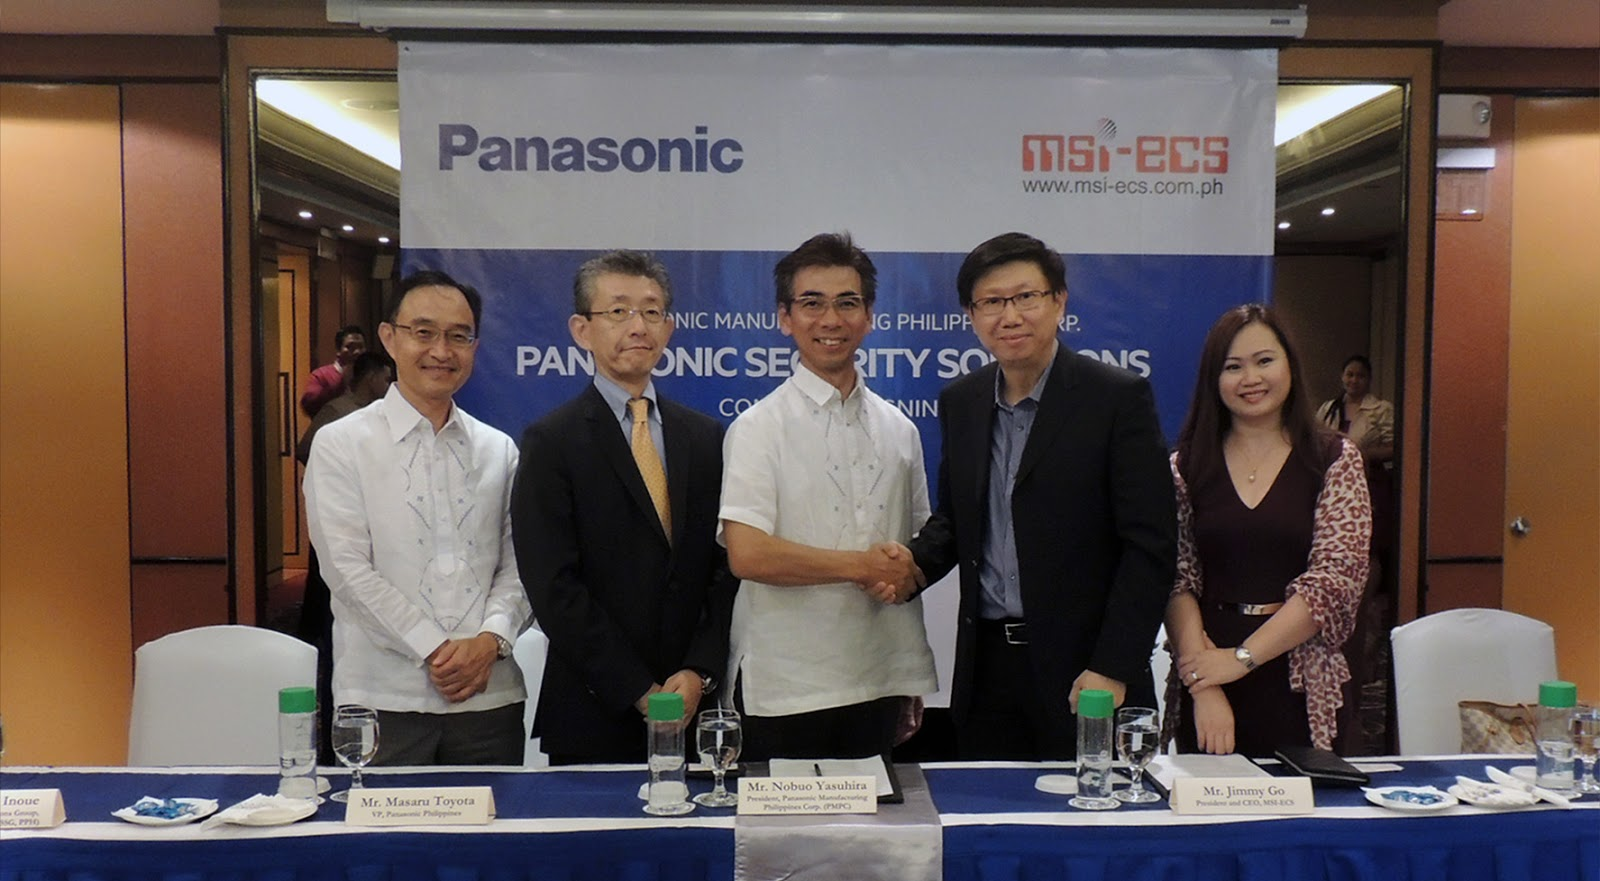 Panasonic appoints MSI-ECS as country disty for security solutions